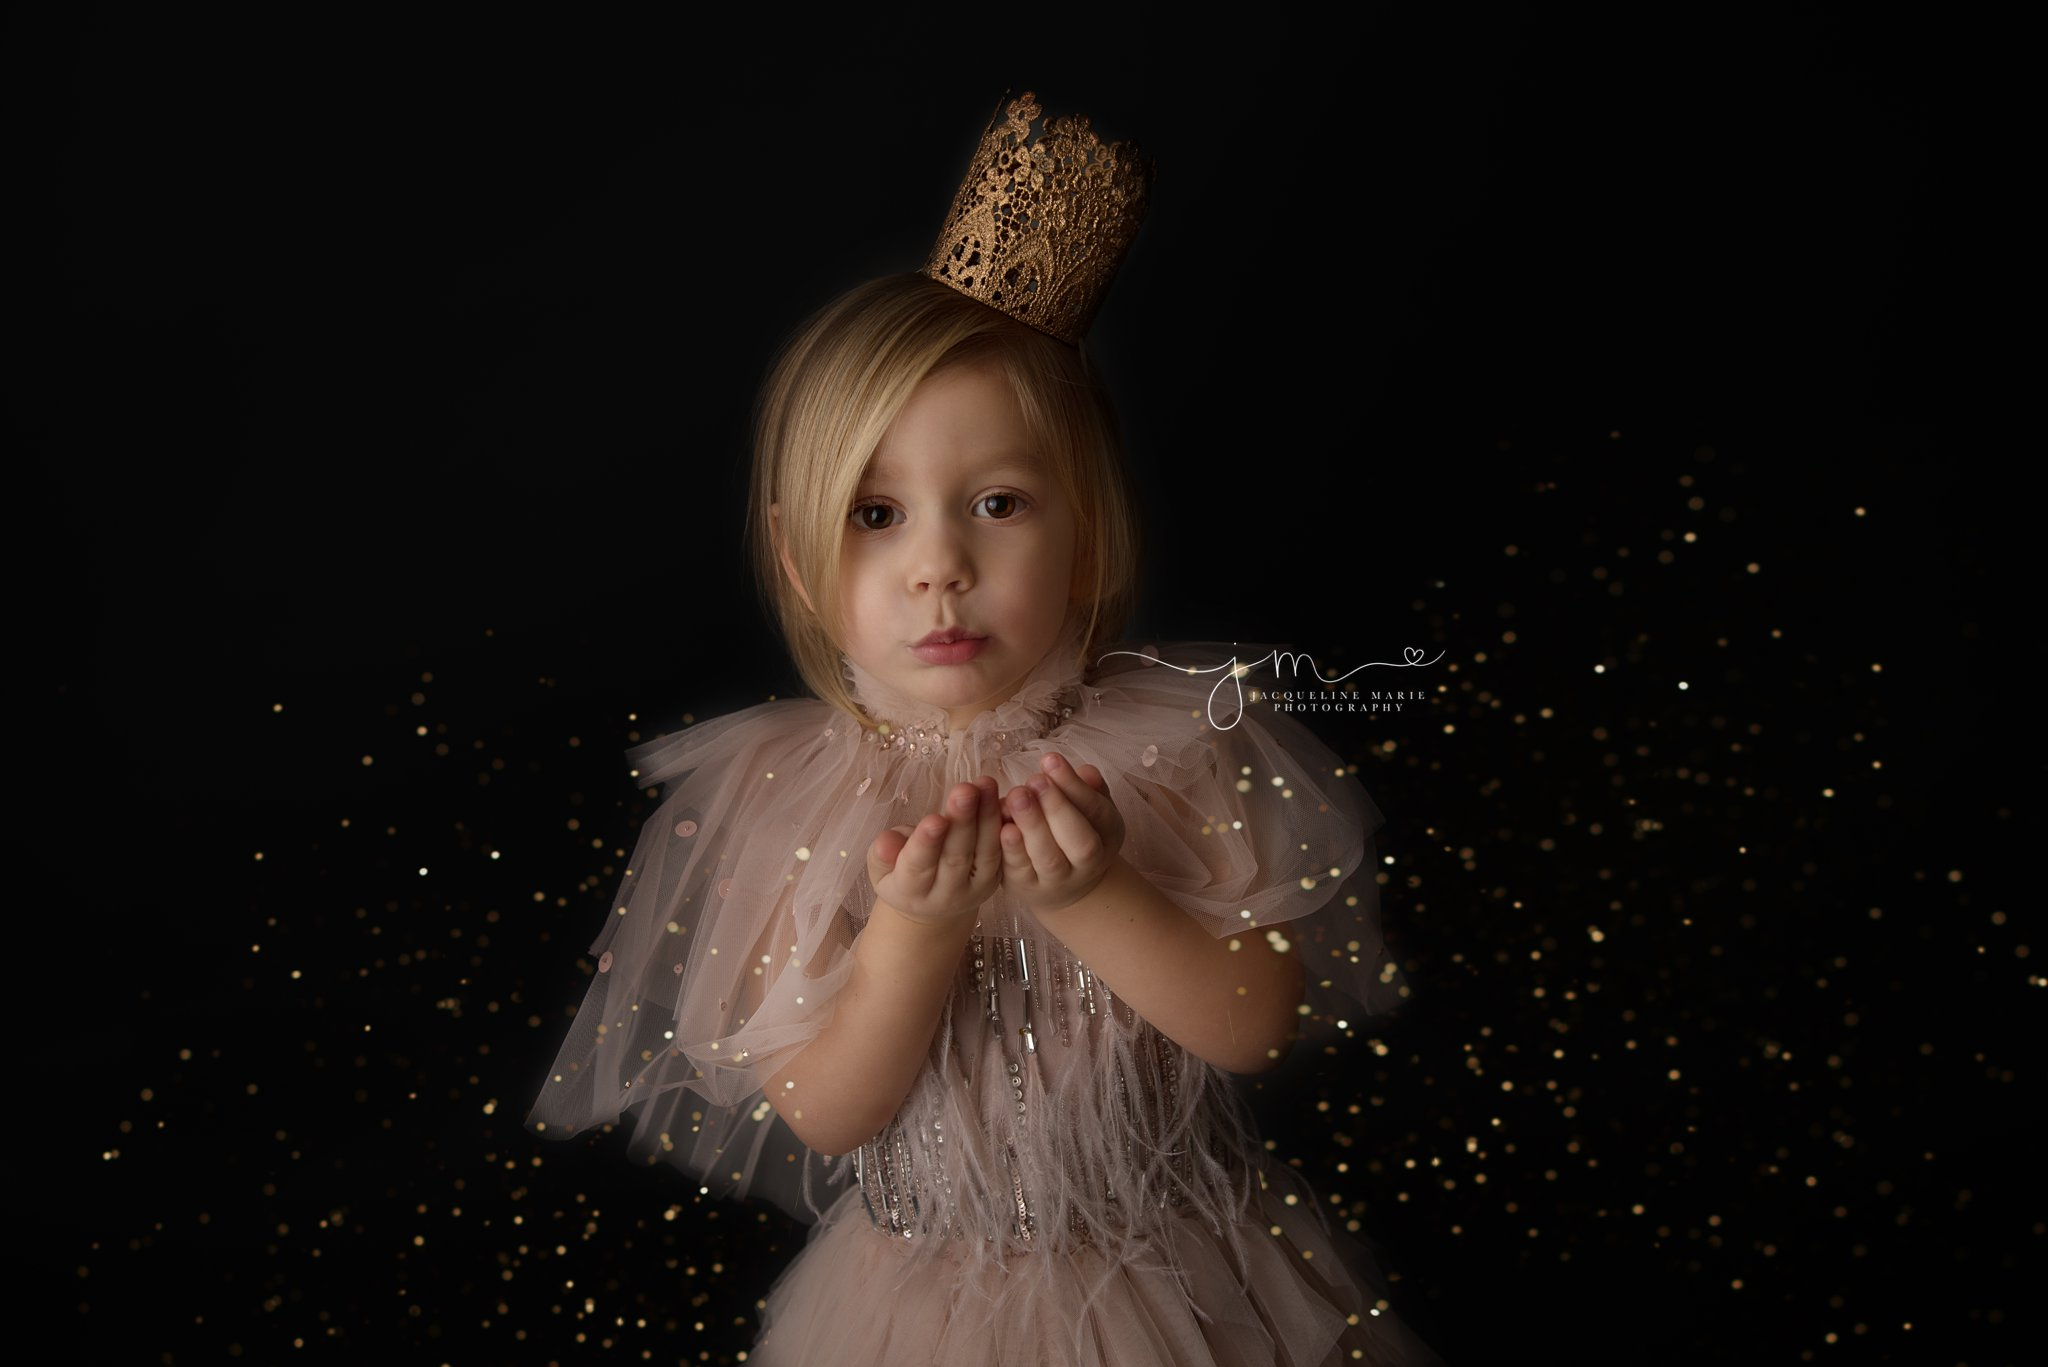 columbus ohio children photographer features image of three year old blowing gold glitter wearing pink dress for glitter mini photography session,glitter session with tutu du mode dresses